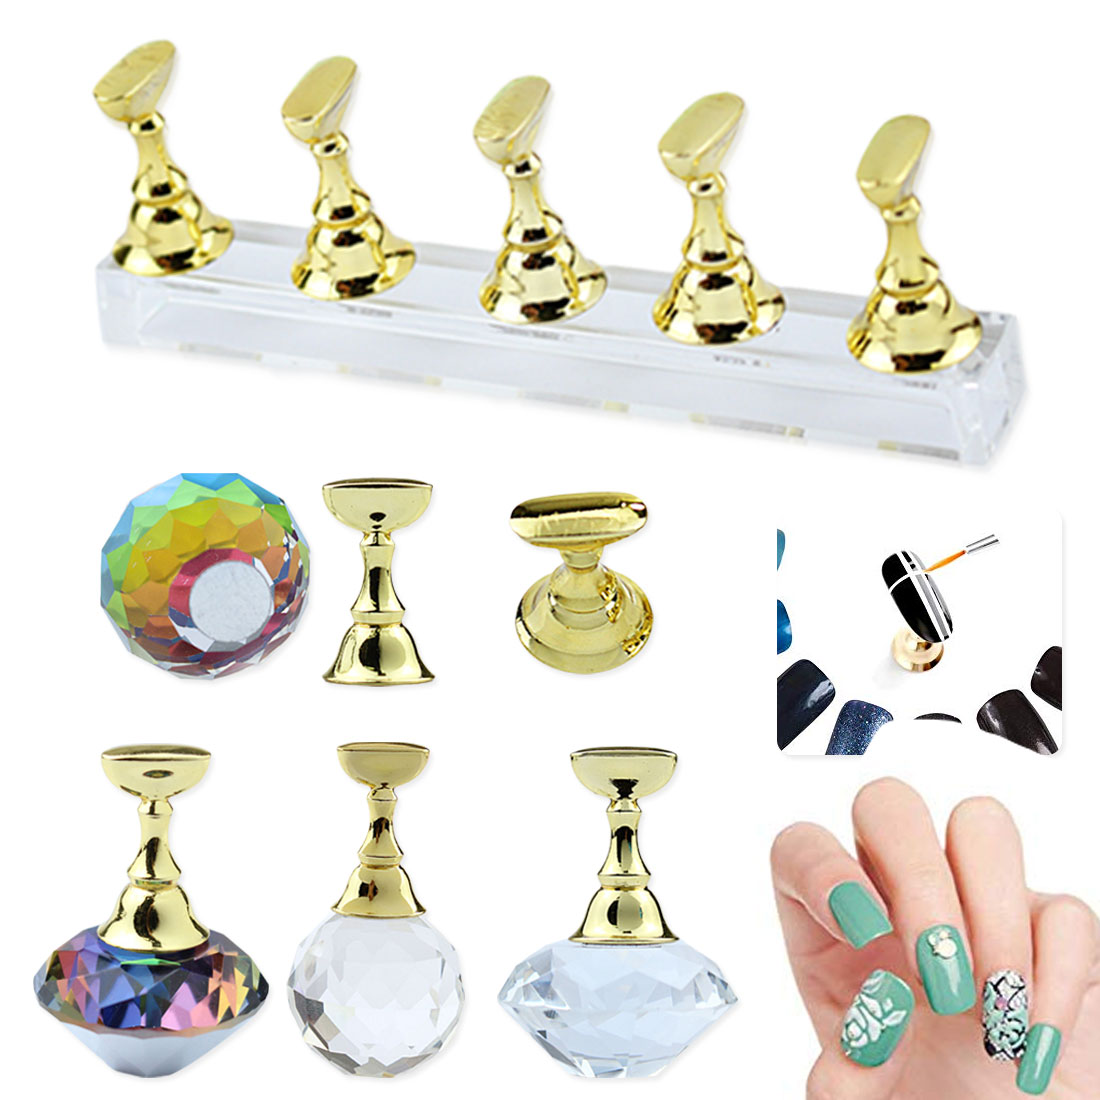 1Pcs Magnetic Nail Tips Stand Holders Acrylic Crystal Base Training Practice Stand Display For UV Gel Polish Nail Art Tools